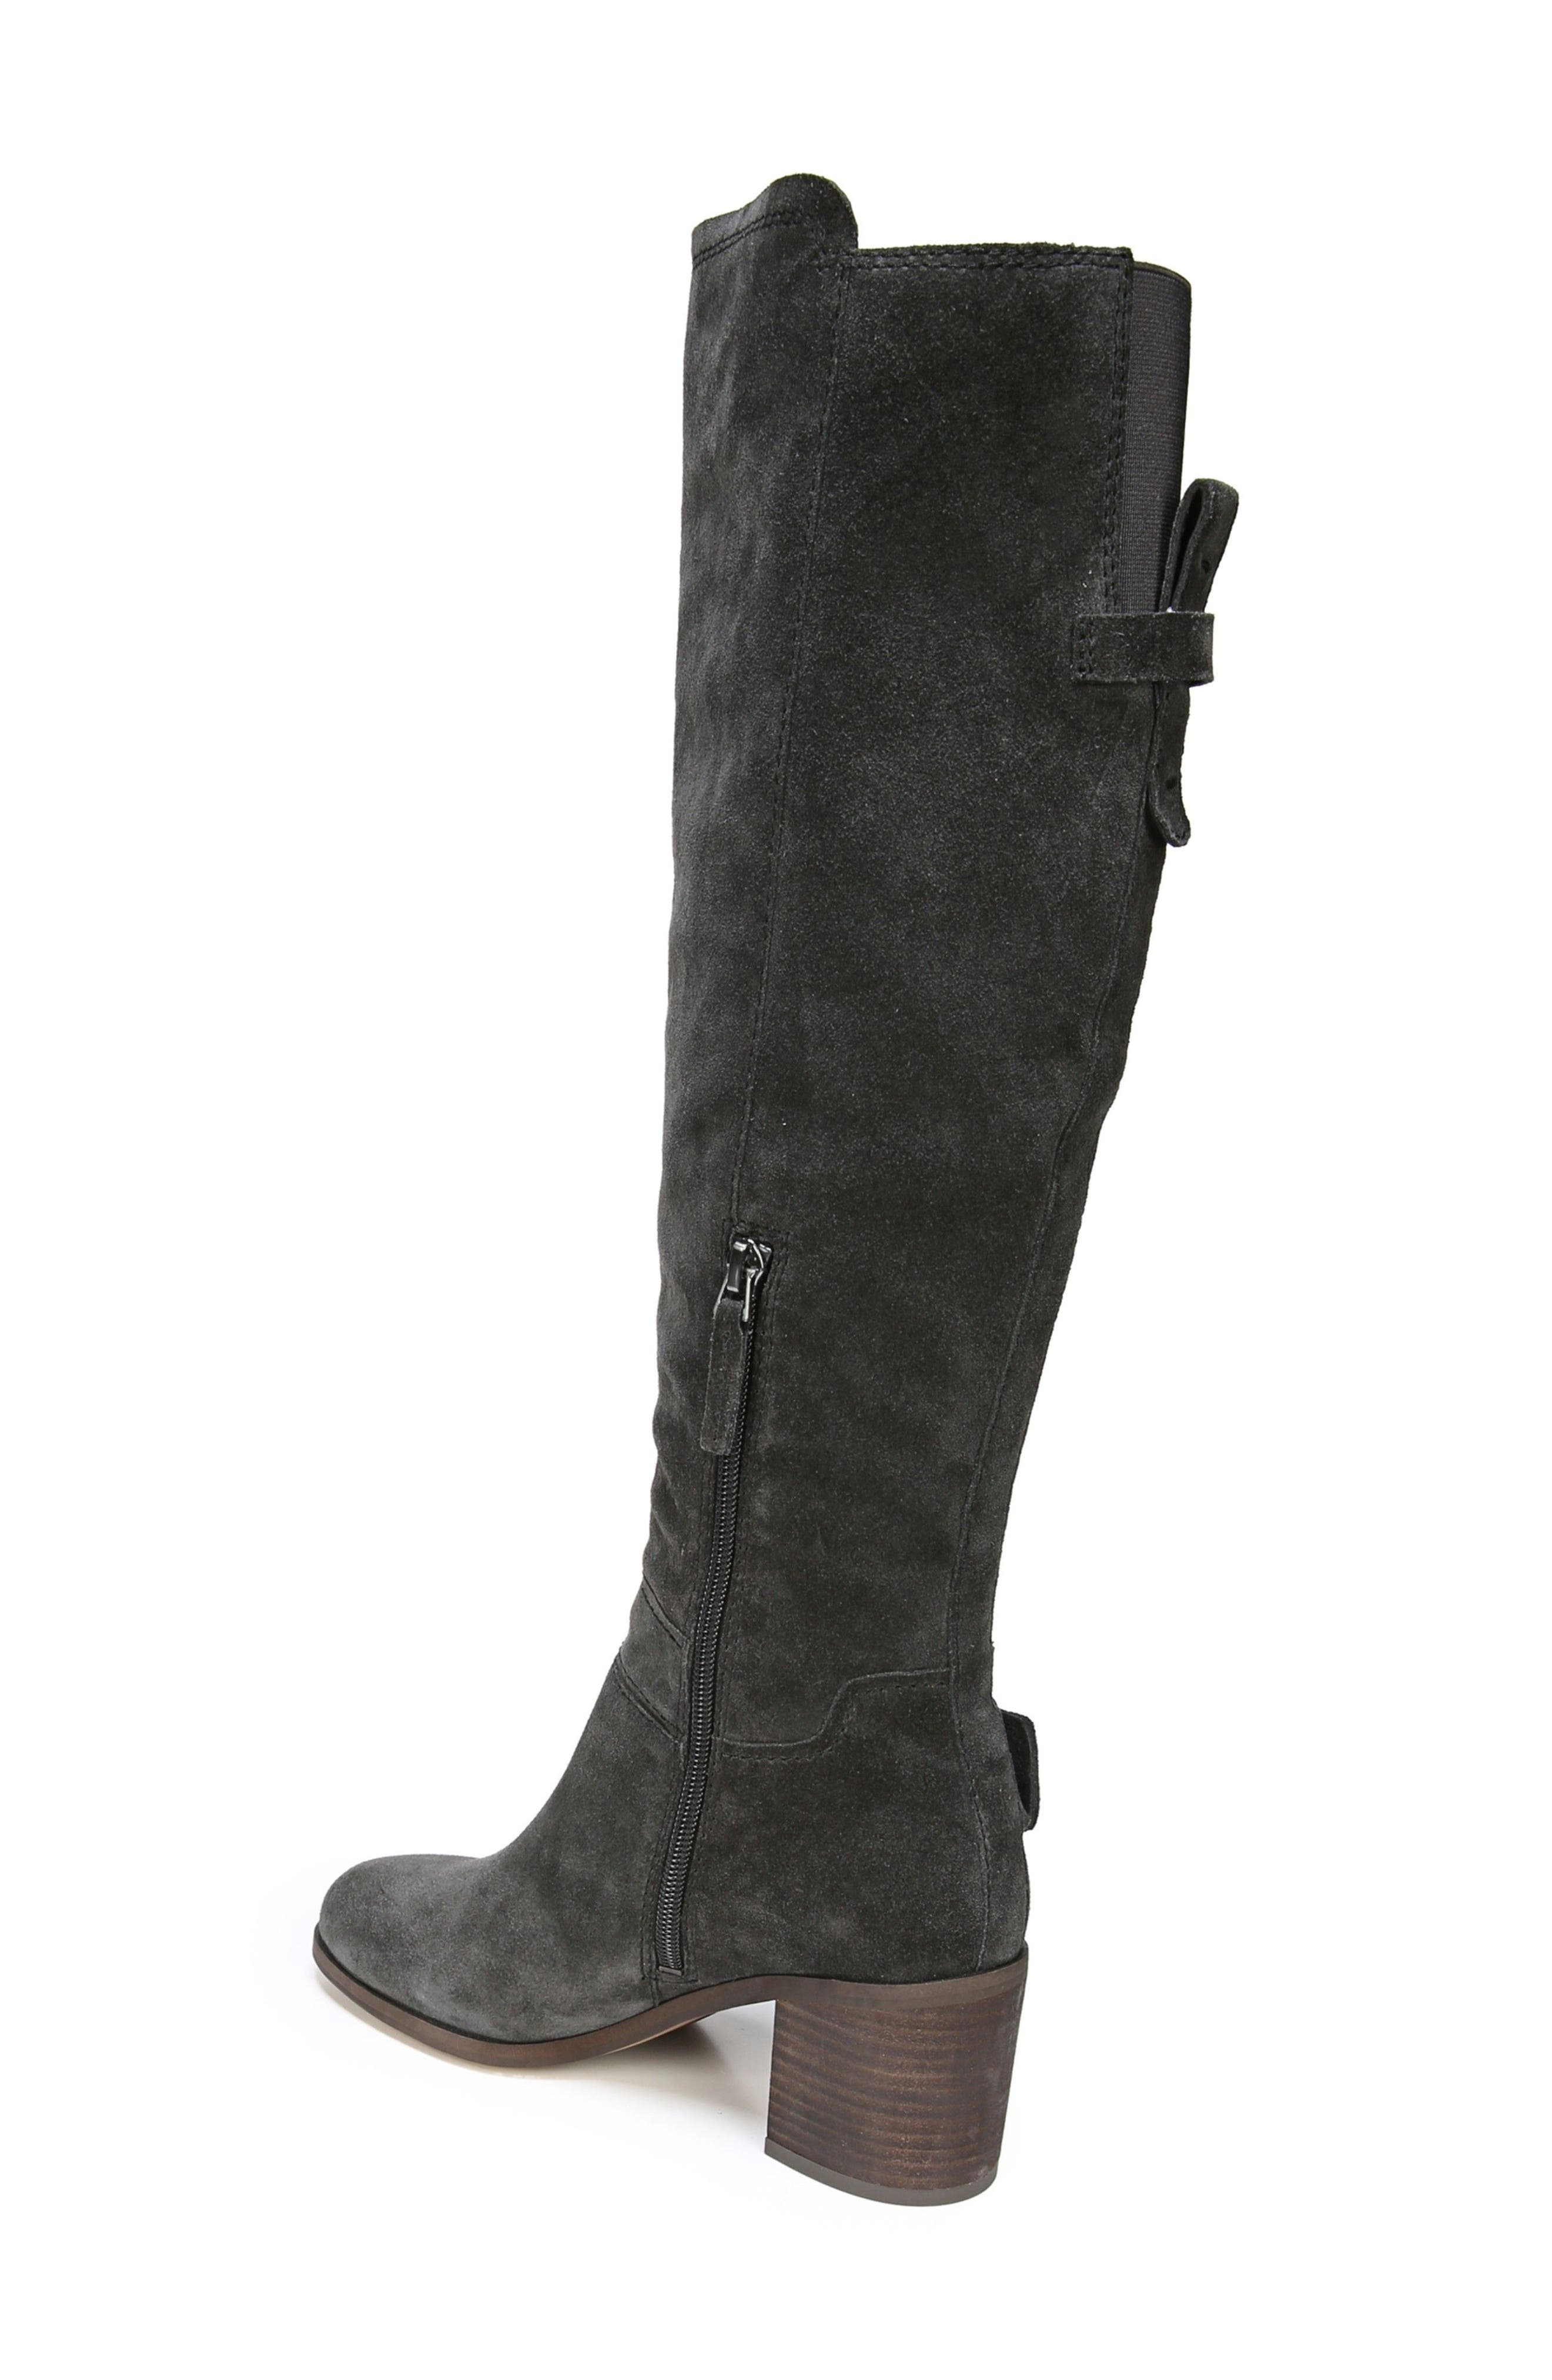 Alternate Image 2  - SARTO by Franco Sarto Mystic Knee High Boot (Women)